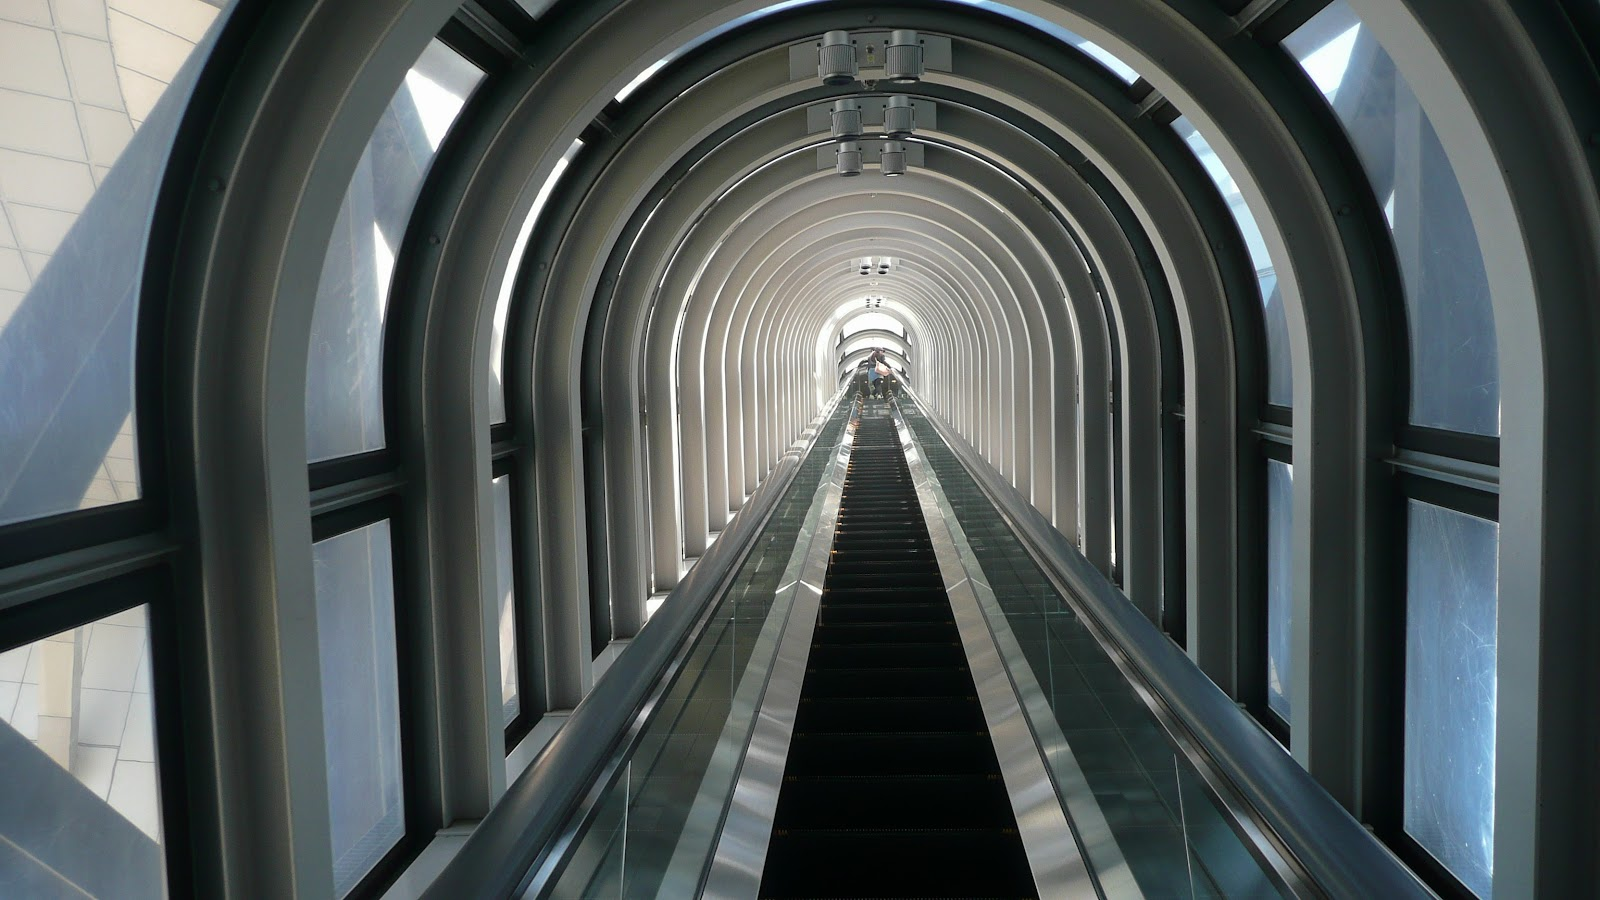 Free Images : architecture, interior, glass, building, tunnel ...